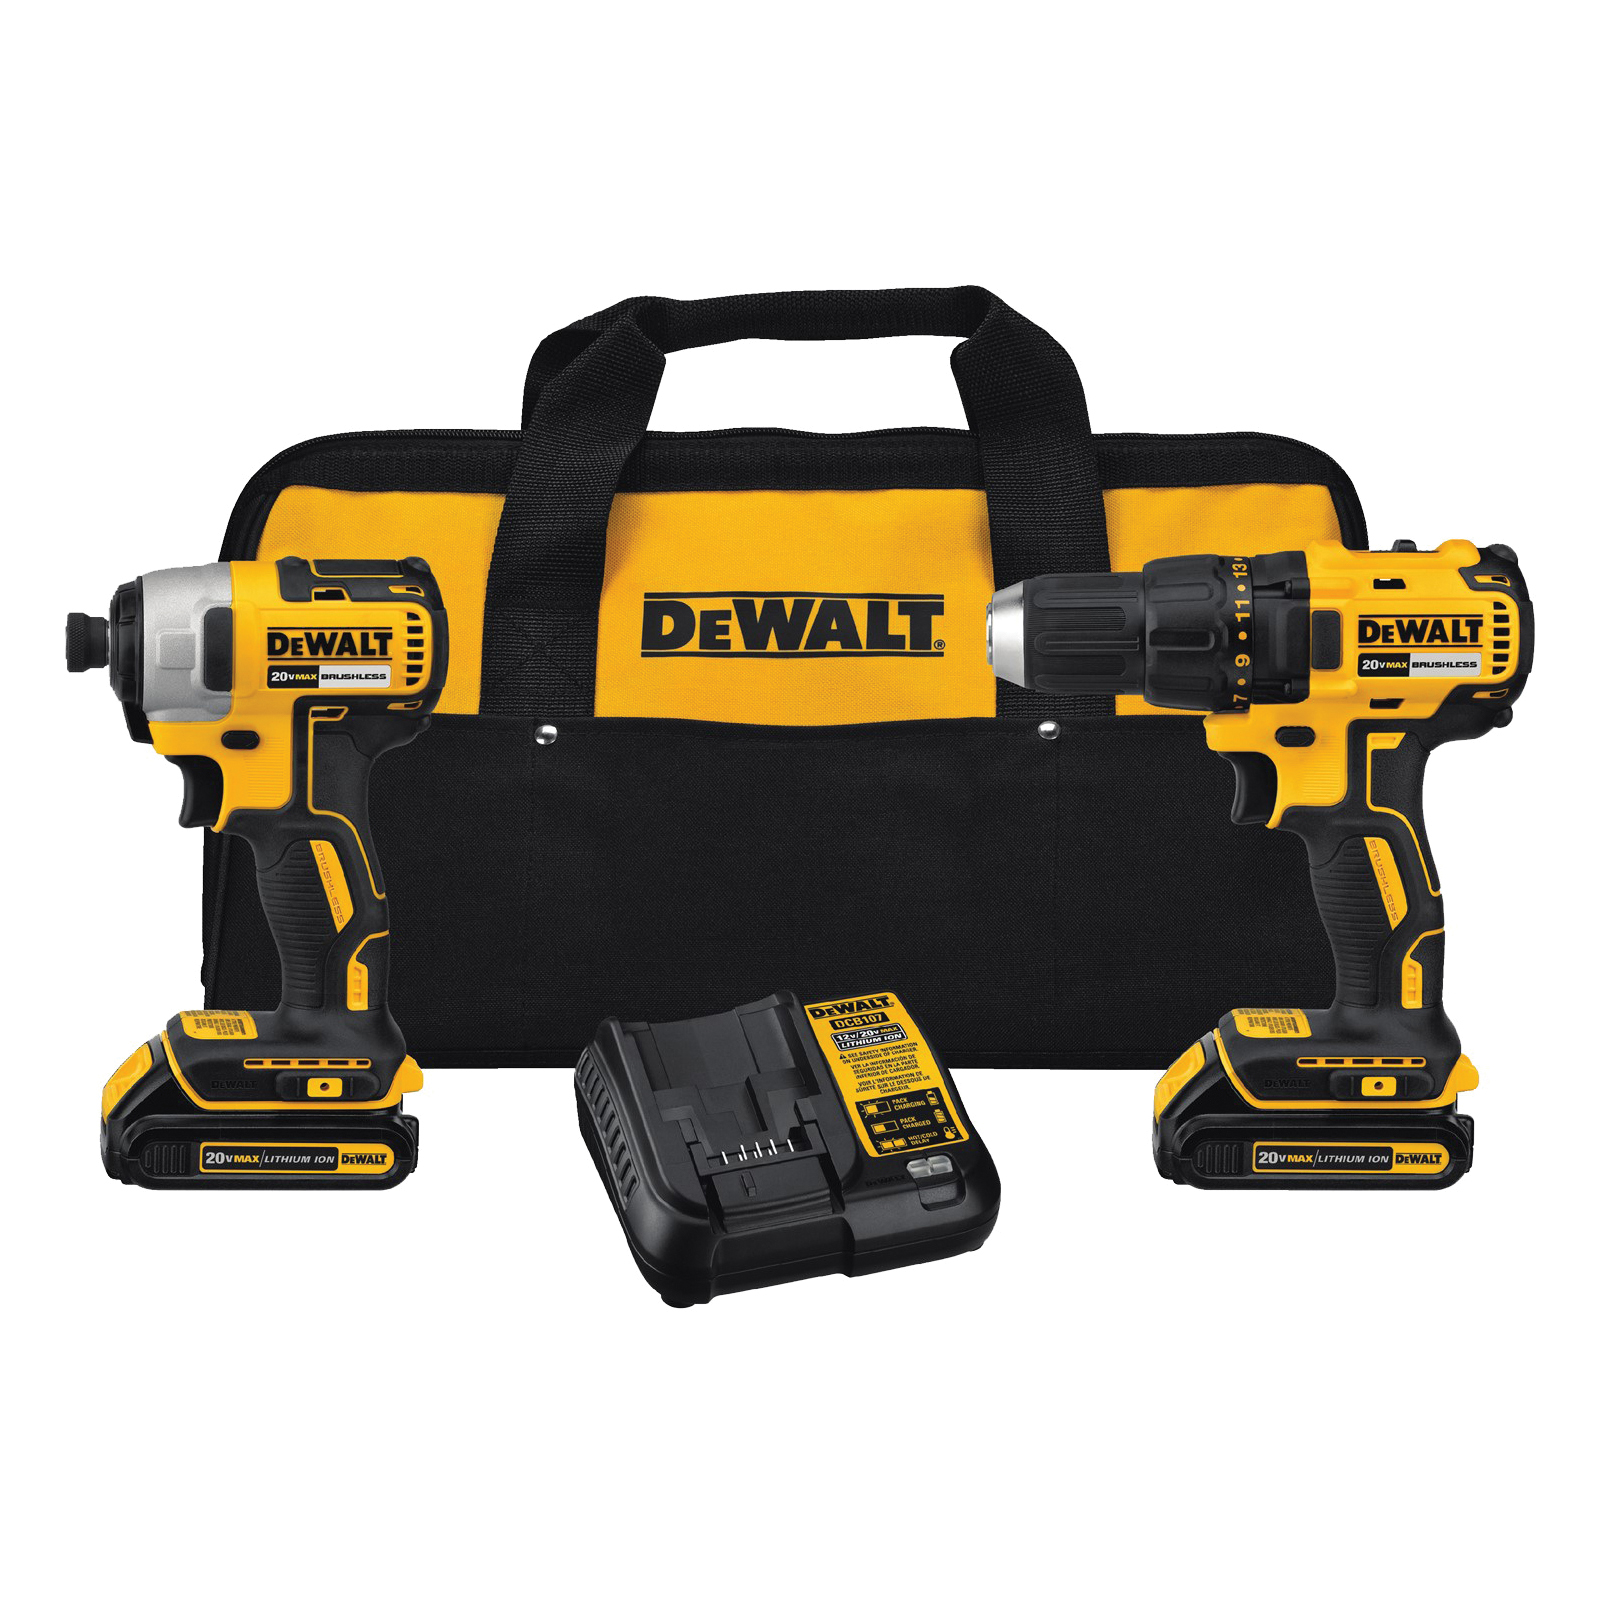 Picture of DeWALT DCK277C2 Combo Kit, Battery Included: Yes